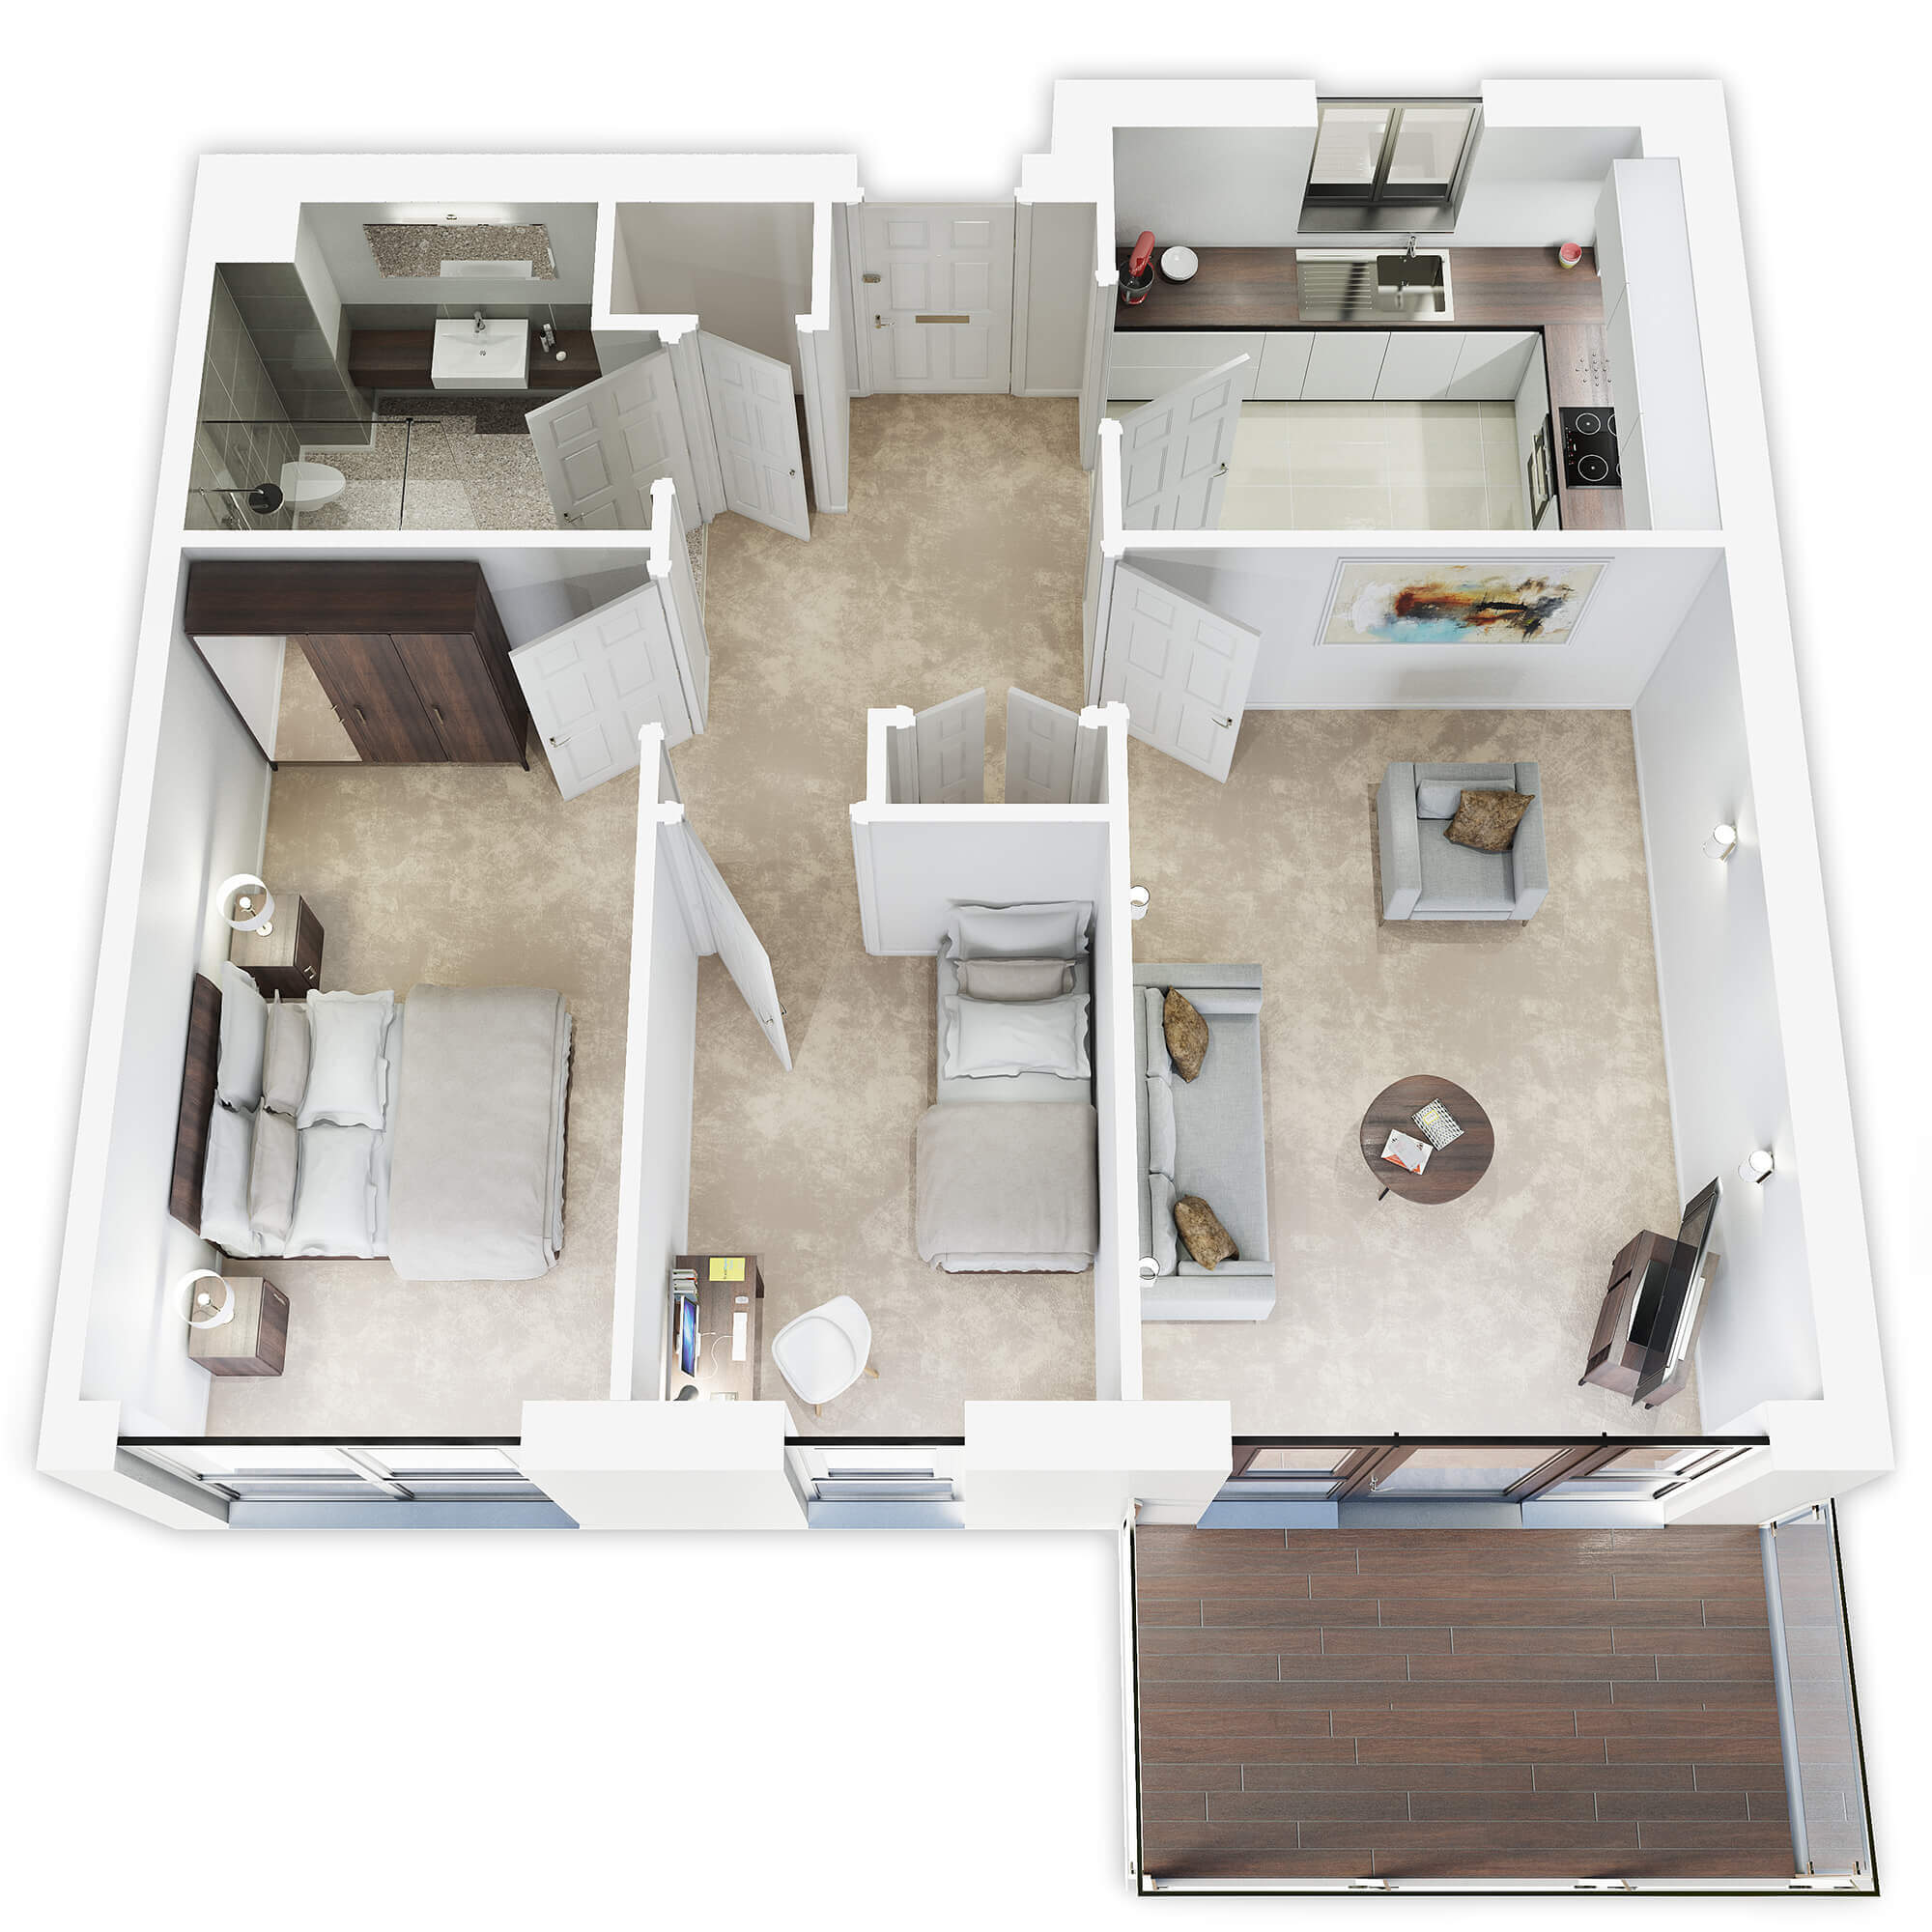 WHITE CROW STUDIOS - 3D COLOURED FLOORPLAN CGI